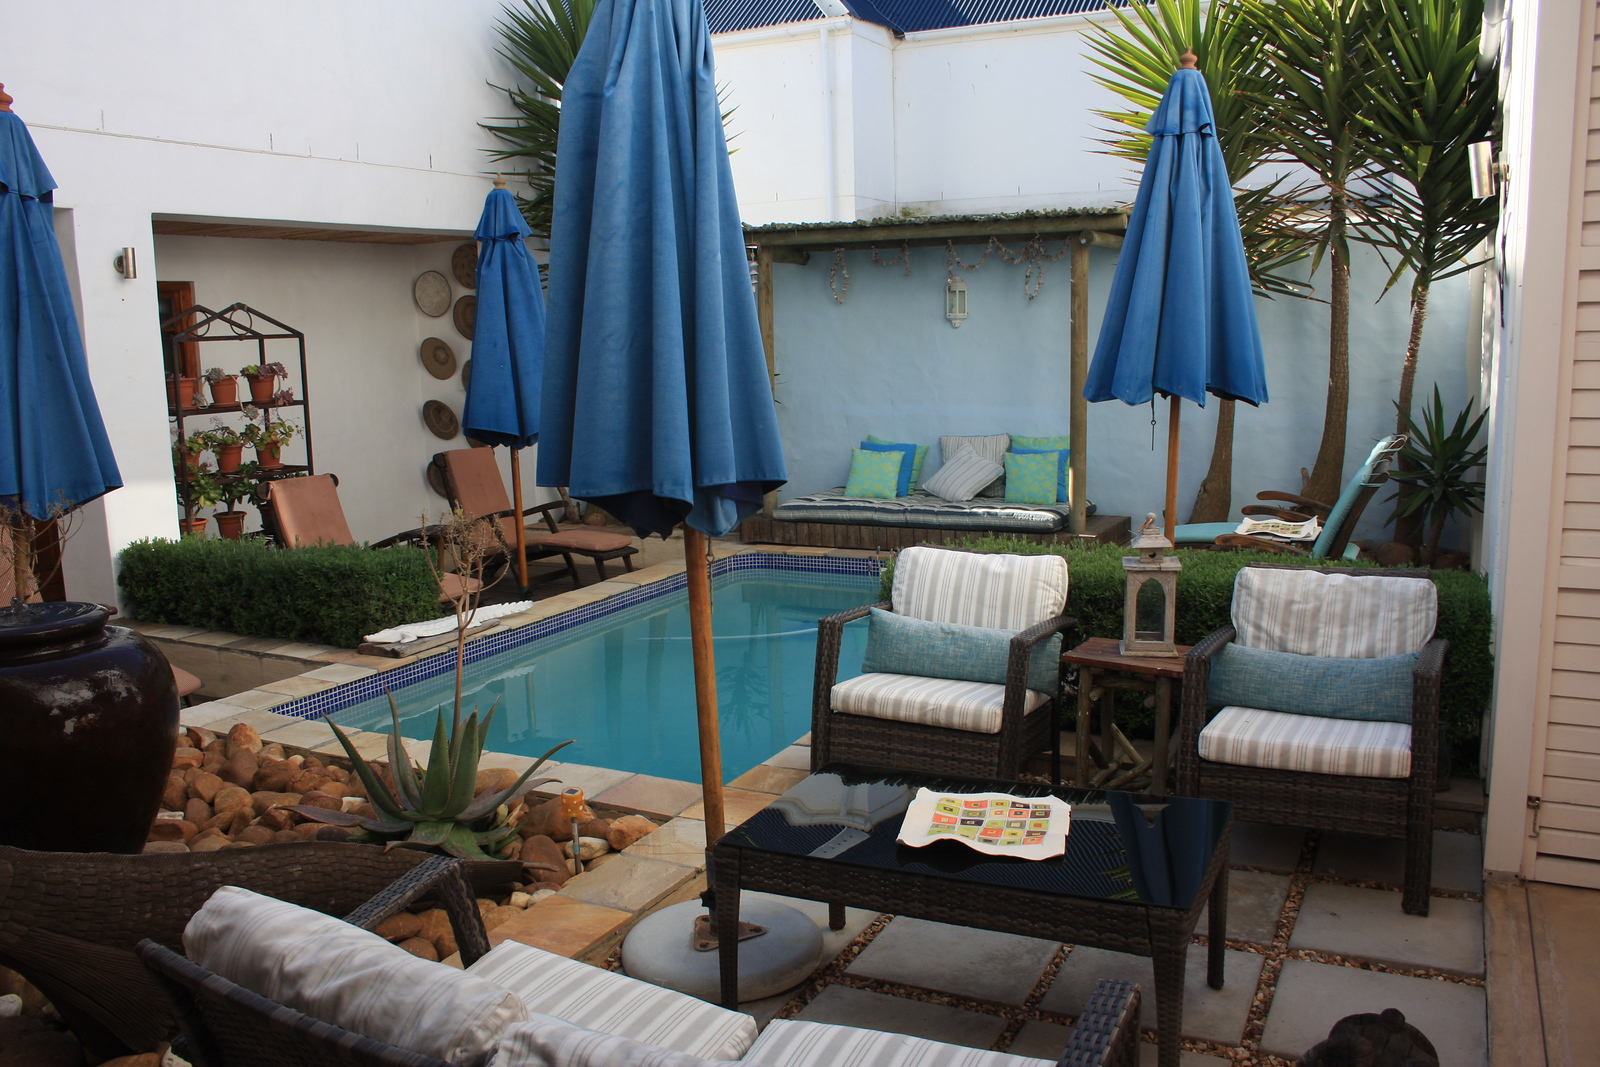 This is the inside pool courtyard inside our guesthouse.